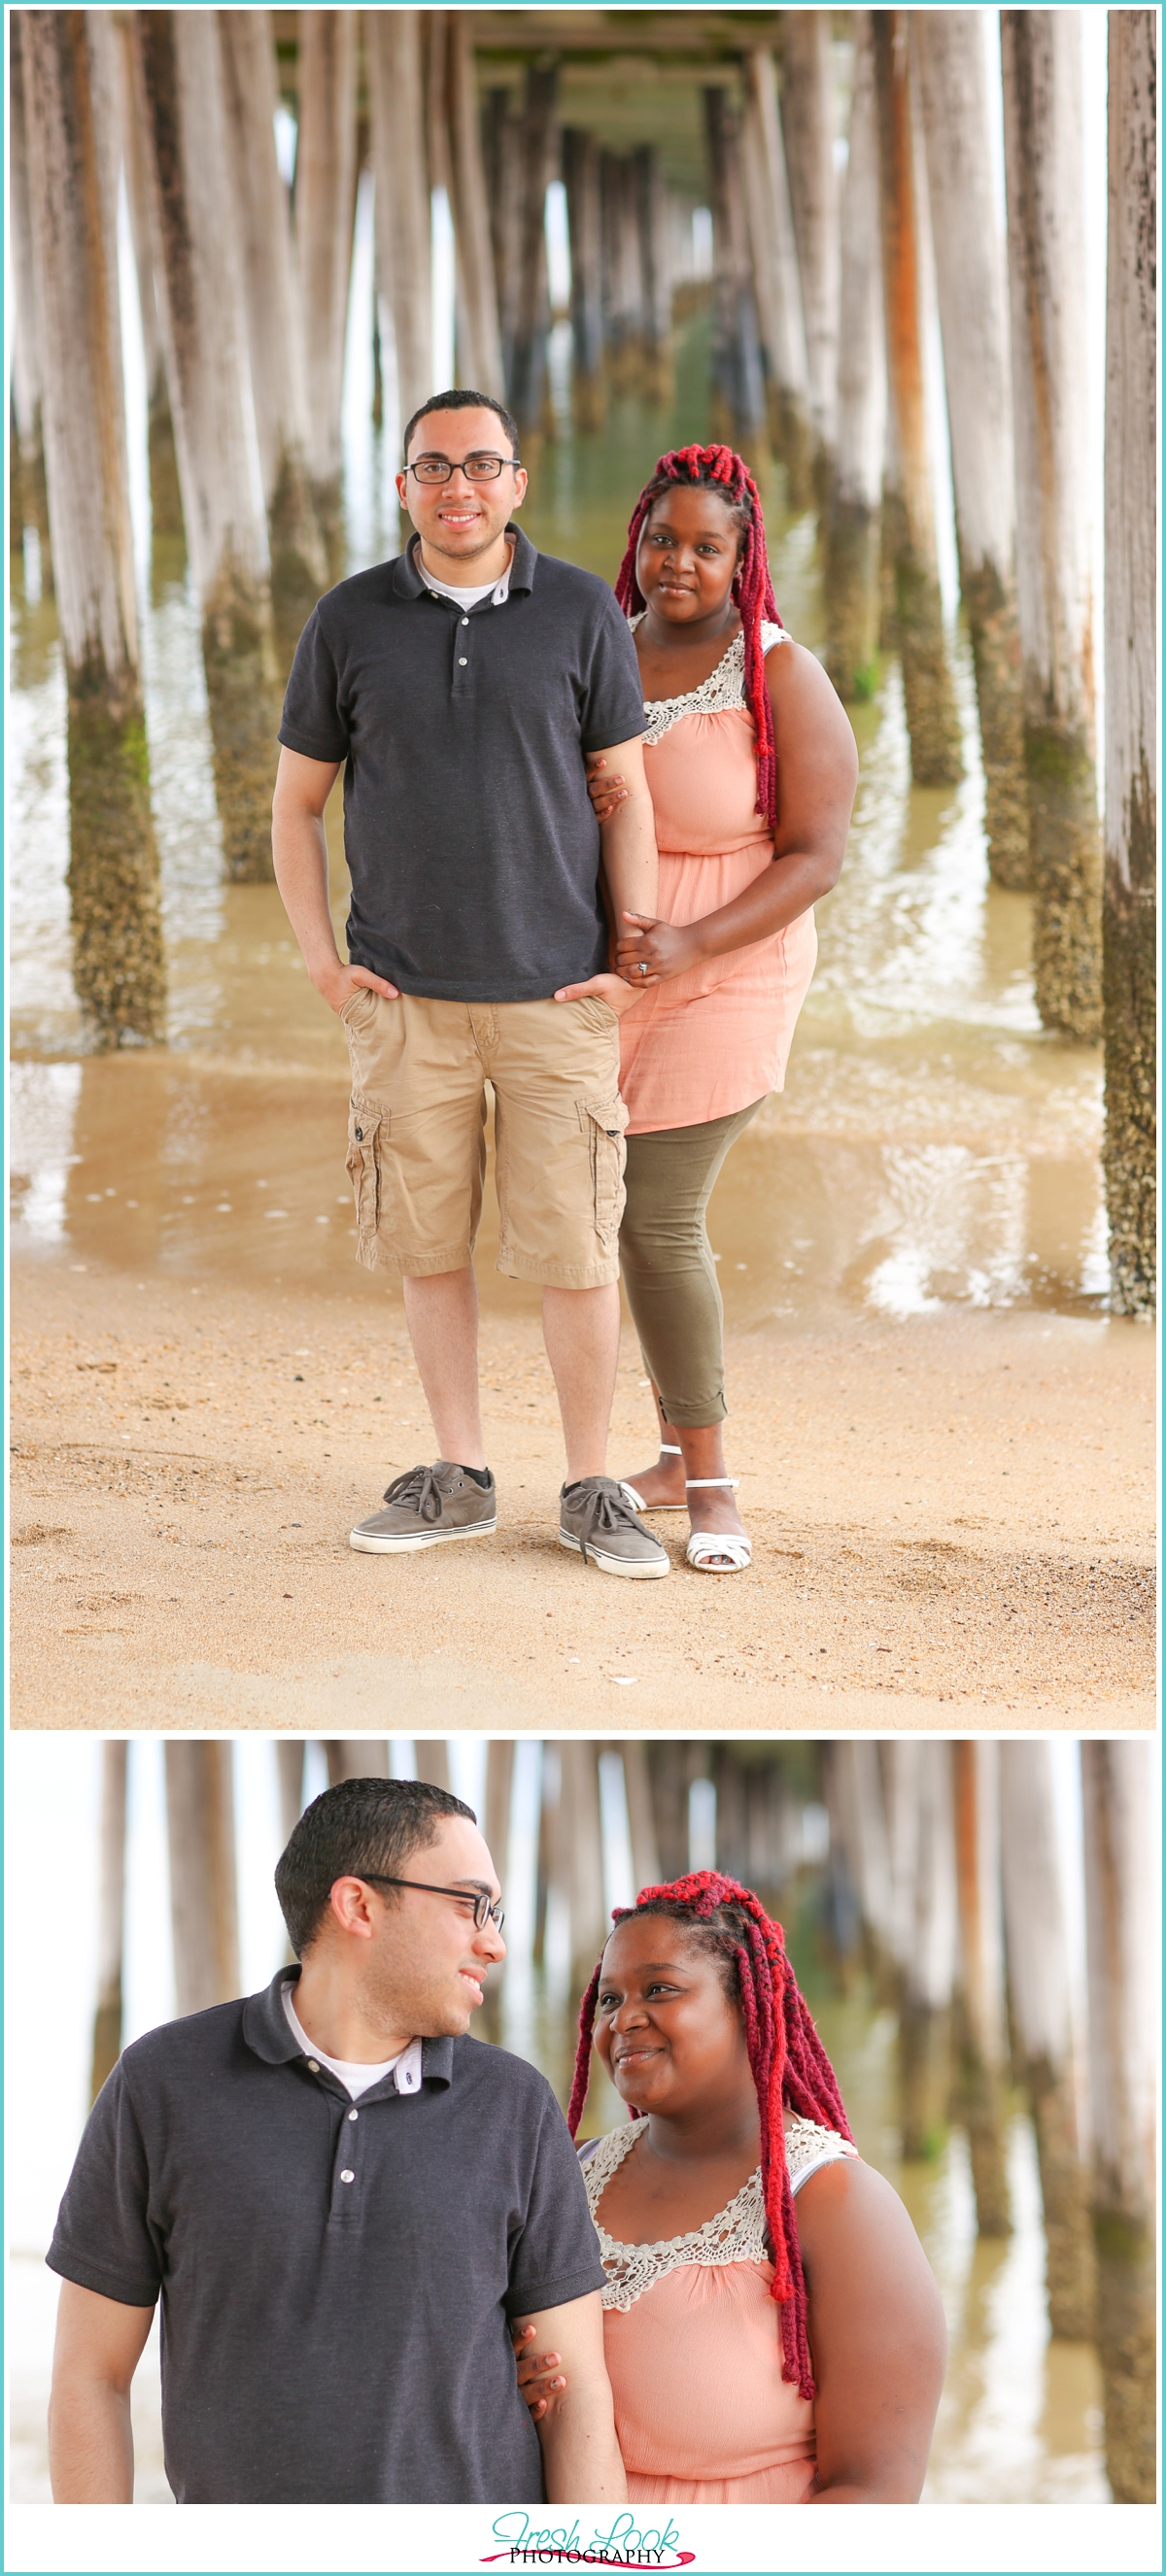 couples beach photo ideas